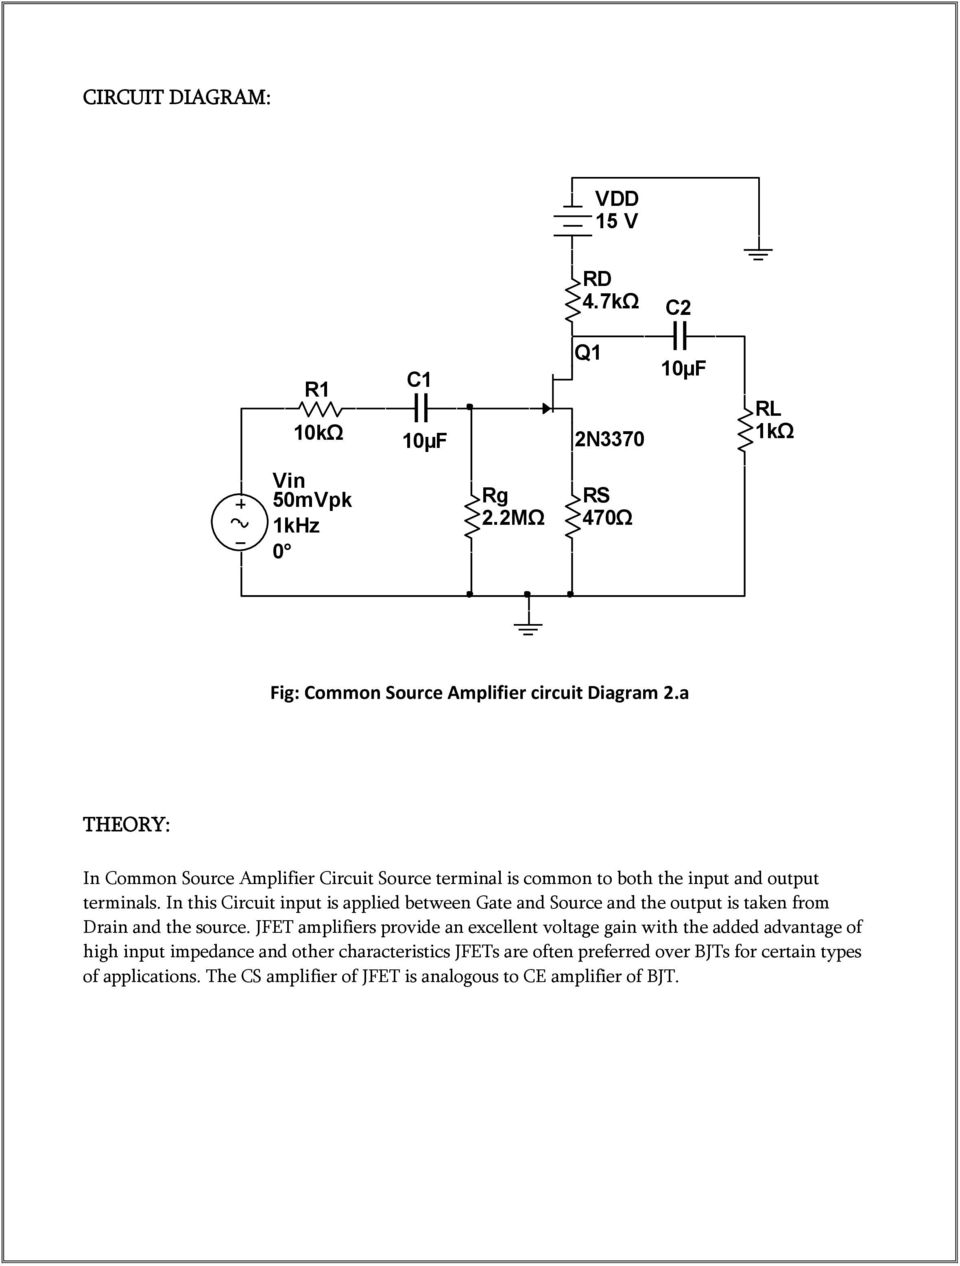 Electronics Circuit Analysis Pdf Diagram Of Jfet In This Input Is Applied Between Gate And Source The Output Taken From